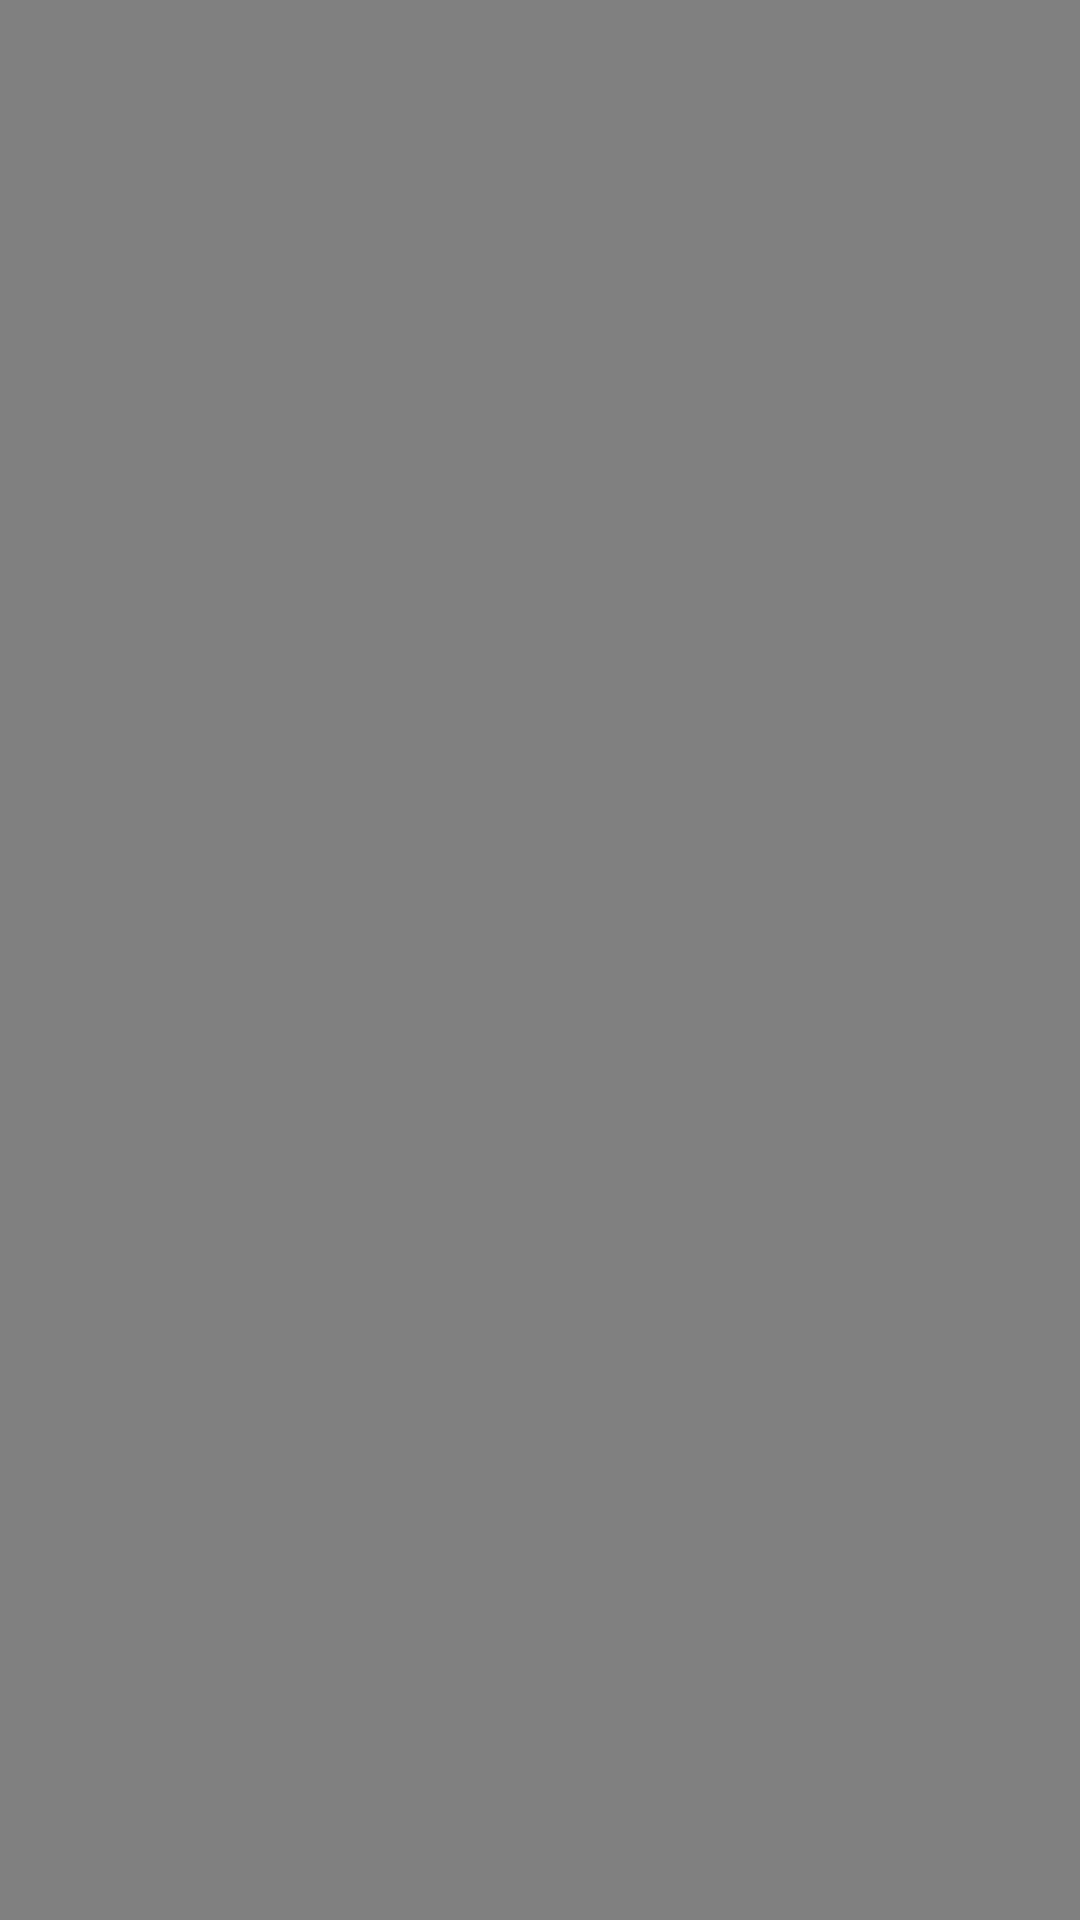 1080x1920 Gray Solid Color Background